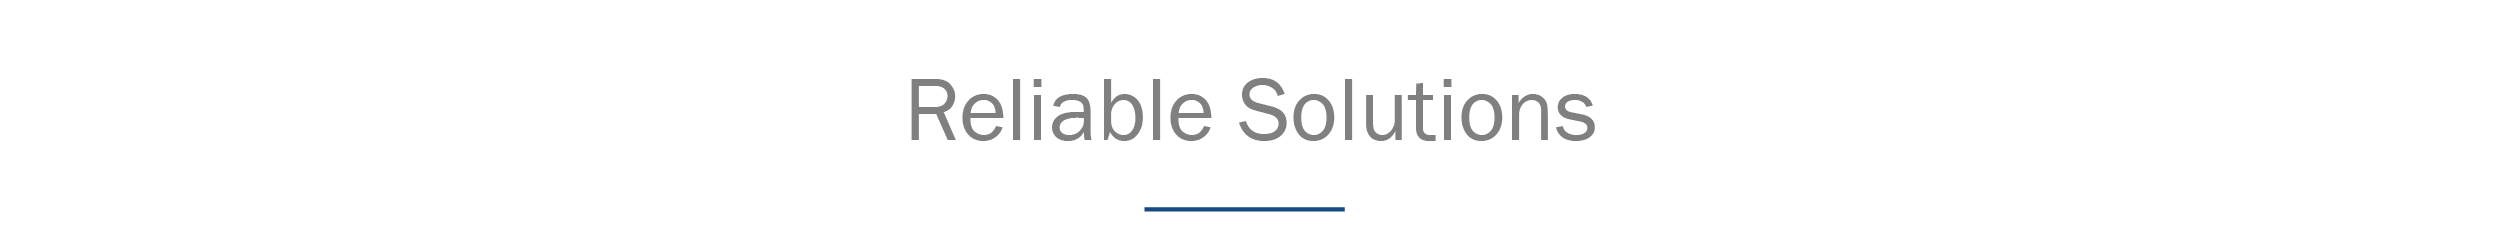 header_reliable solutions